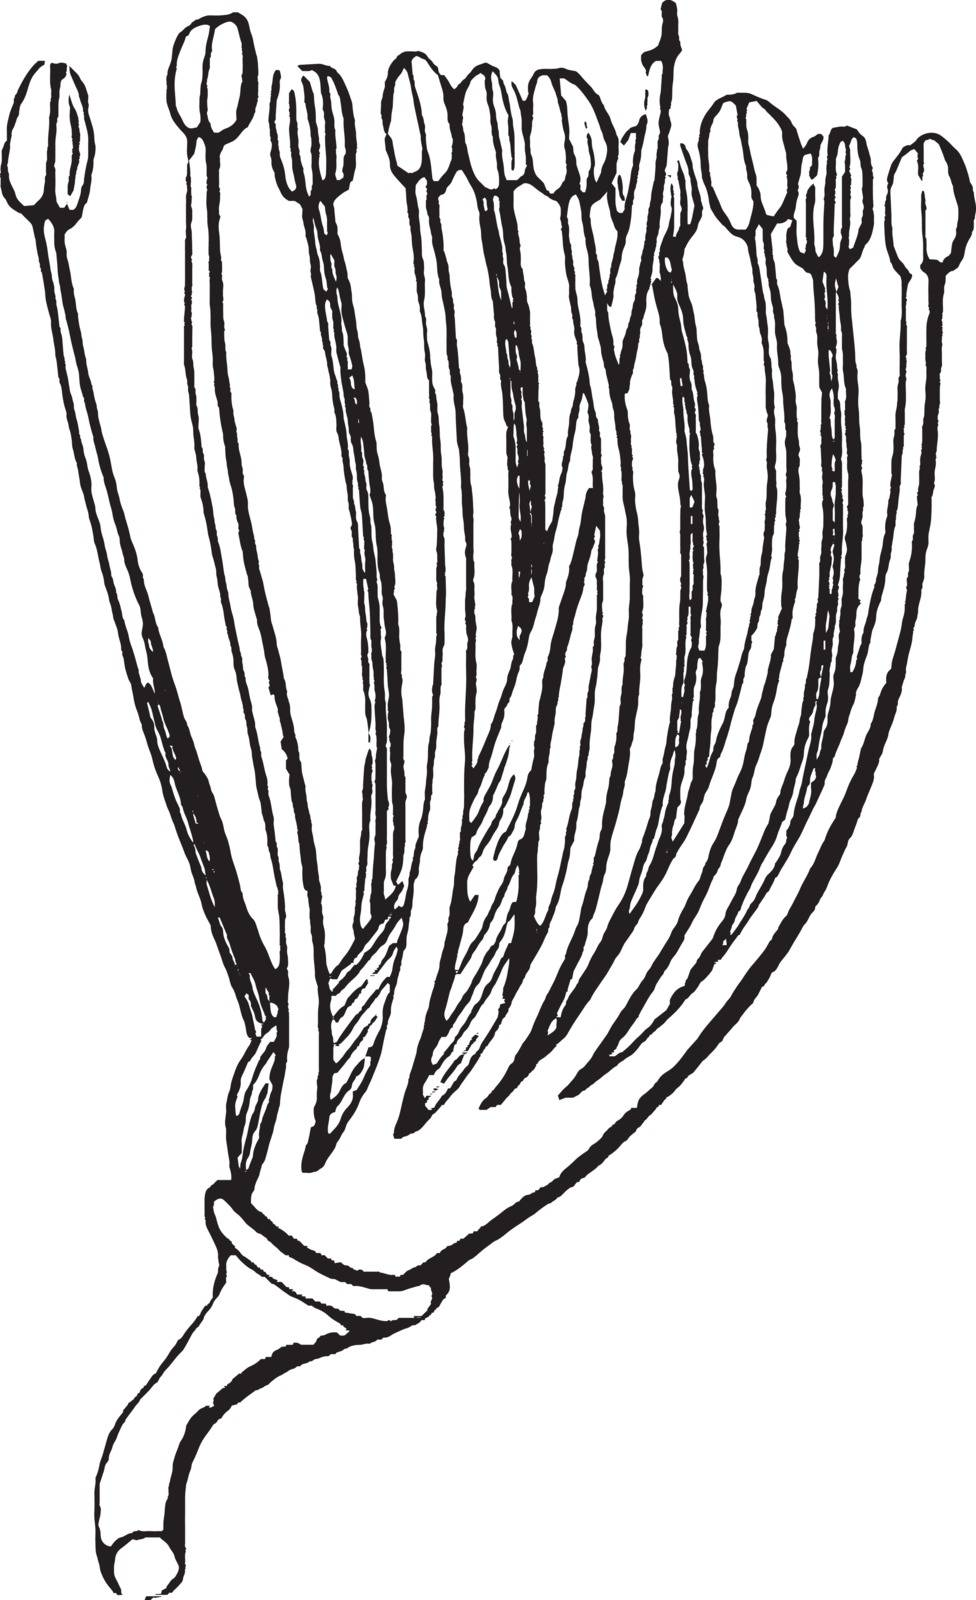 The flower of Amorpha, in the pea family, with petals removed. It grows as a glandular, thorn less shrub which can reach 5 or 6 meters in height and spread to twice that in width, vintage line drawing or engraving illustration.